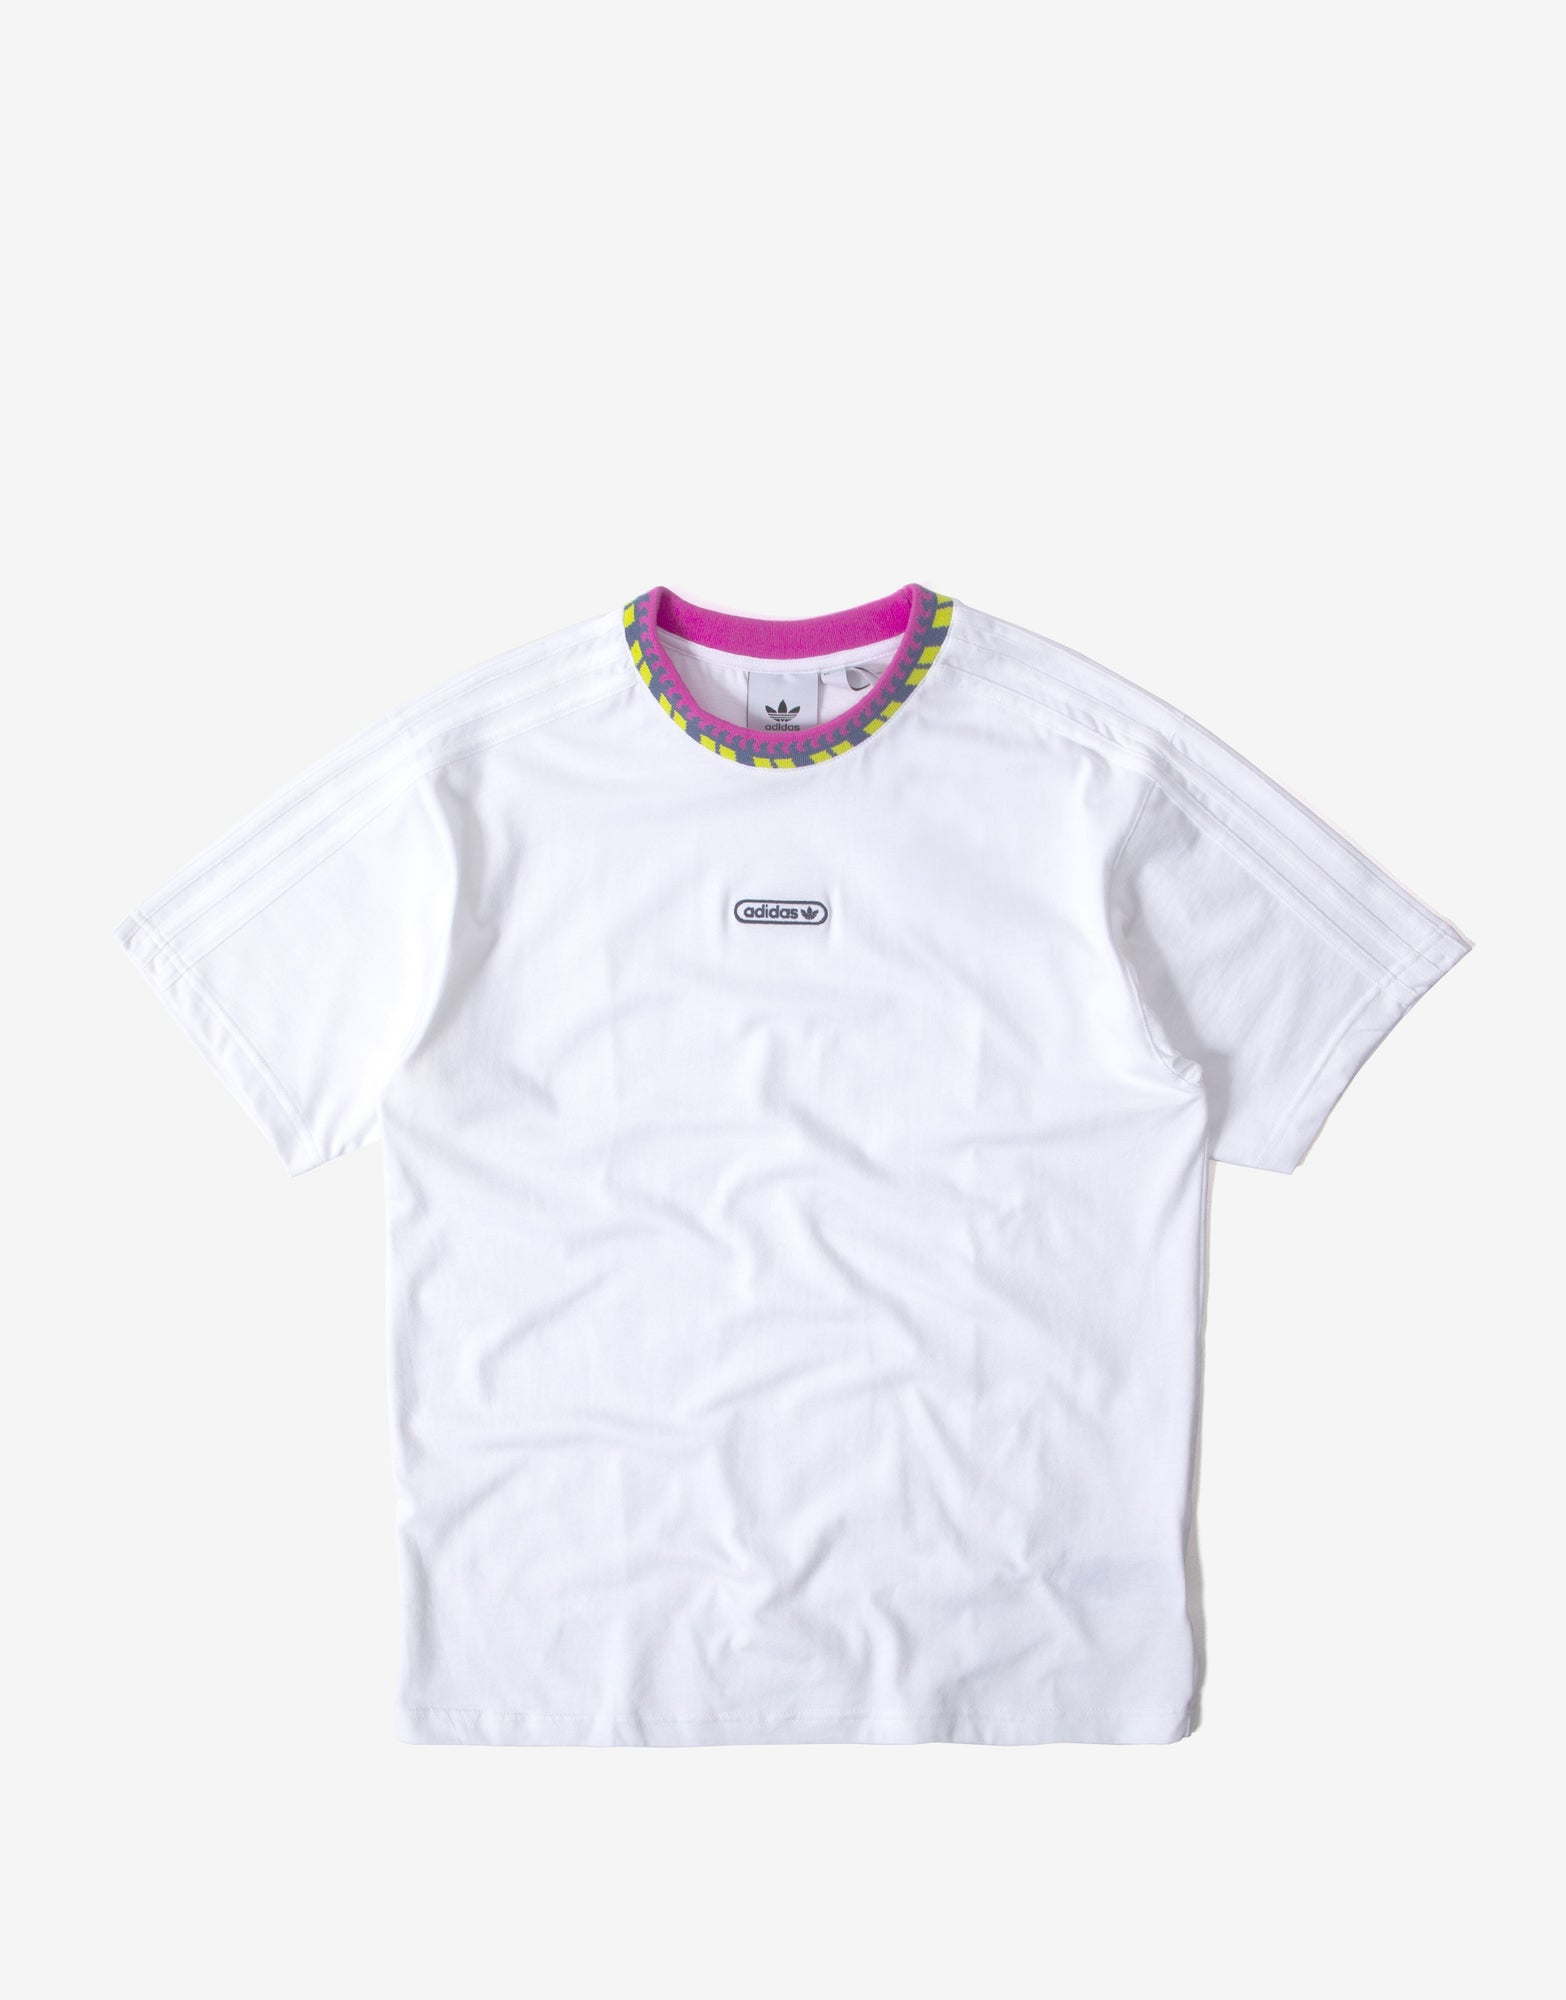 adidas Originals Rib Detail T Shirt - White